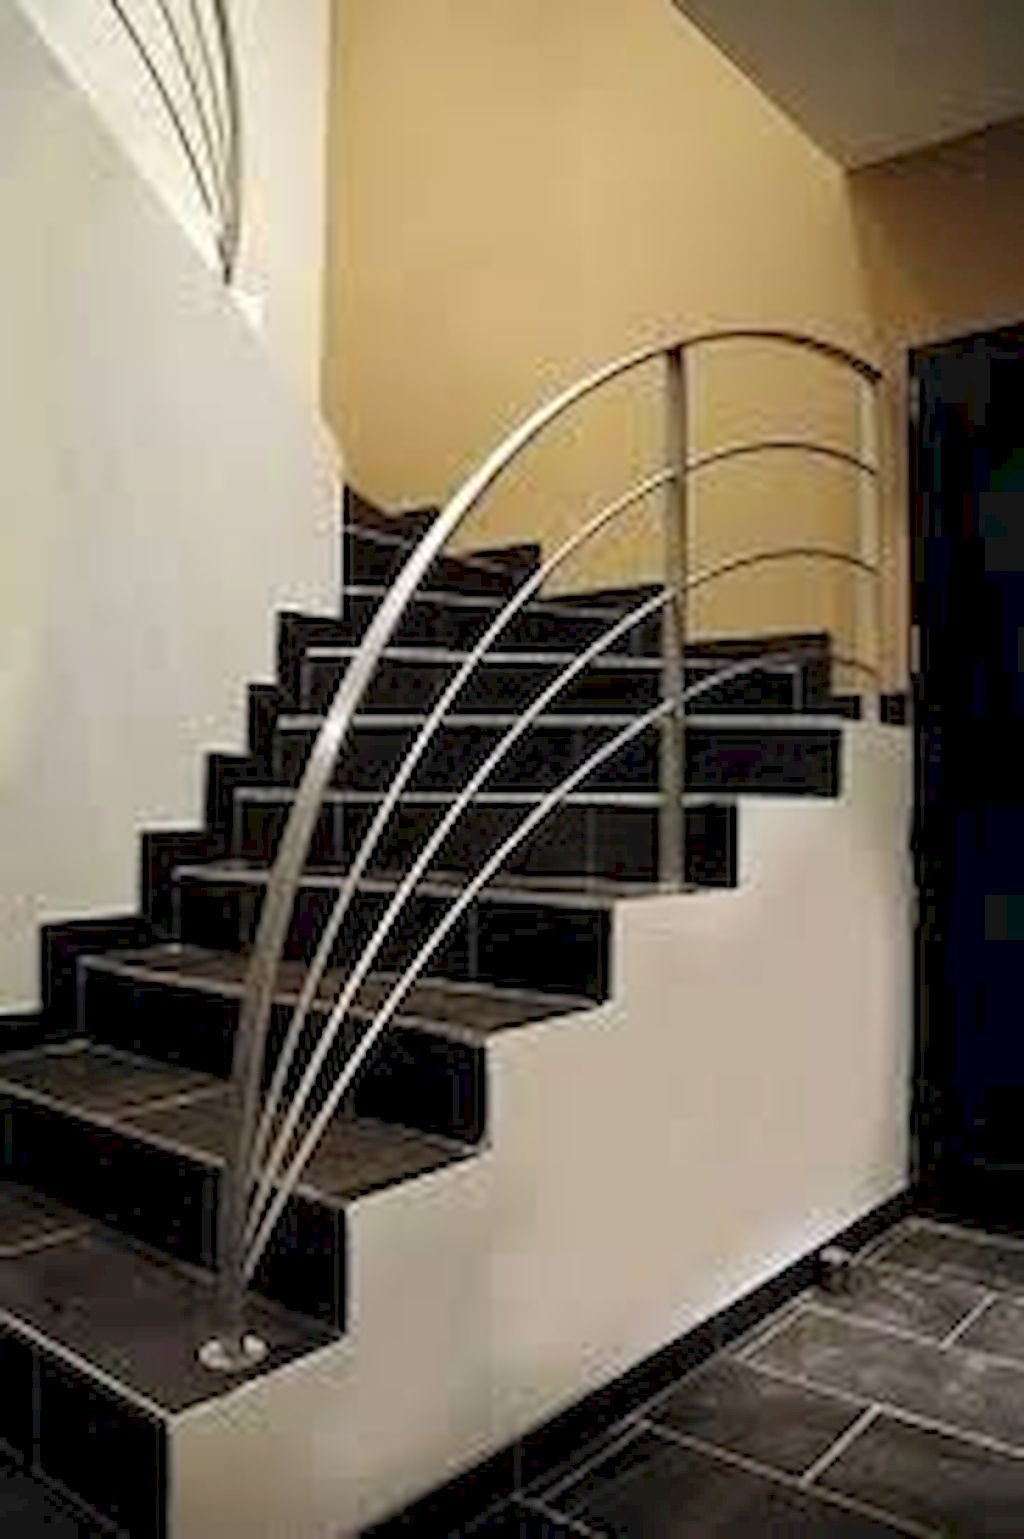 Luxurious The Beautiful Staircase Decor Of The House Becomes   Stairs Railing Designs In Steel   Caramel   Glass   Iron Spindle Railing   Square   Solid Wood